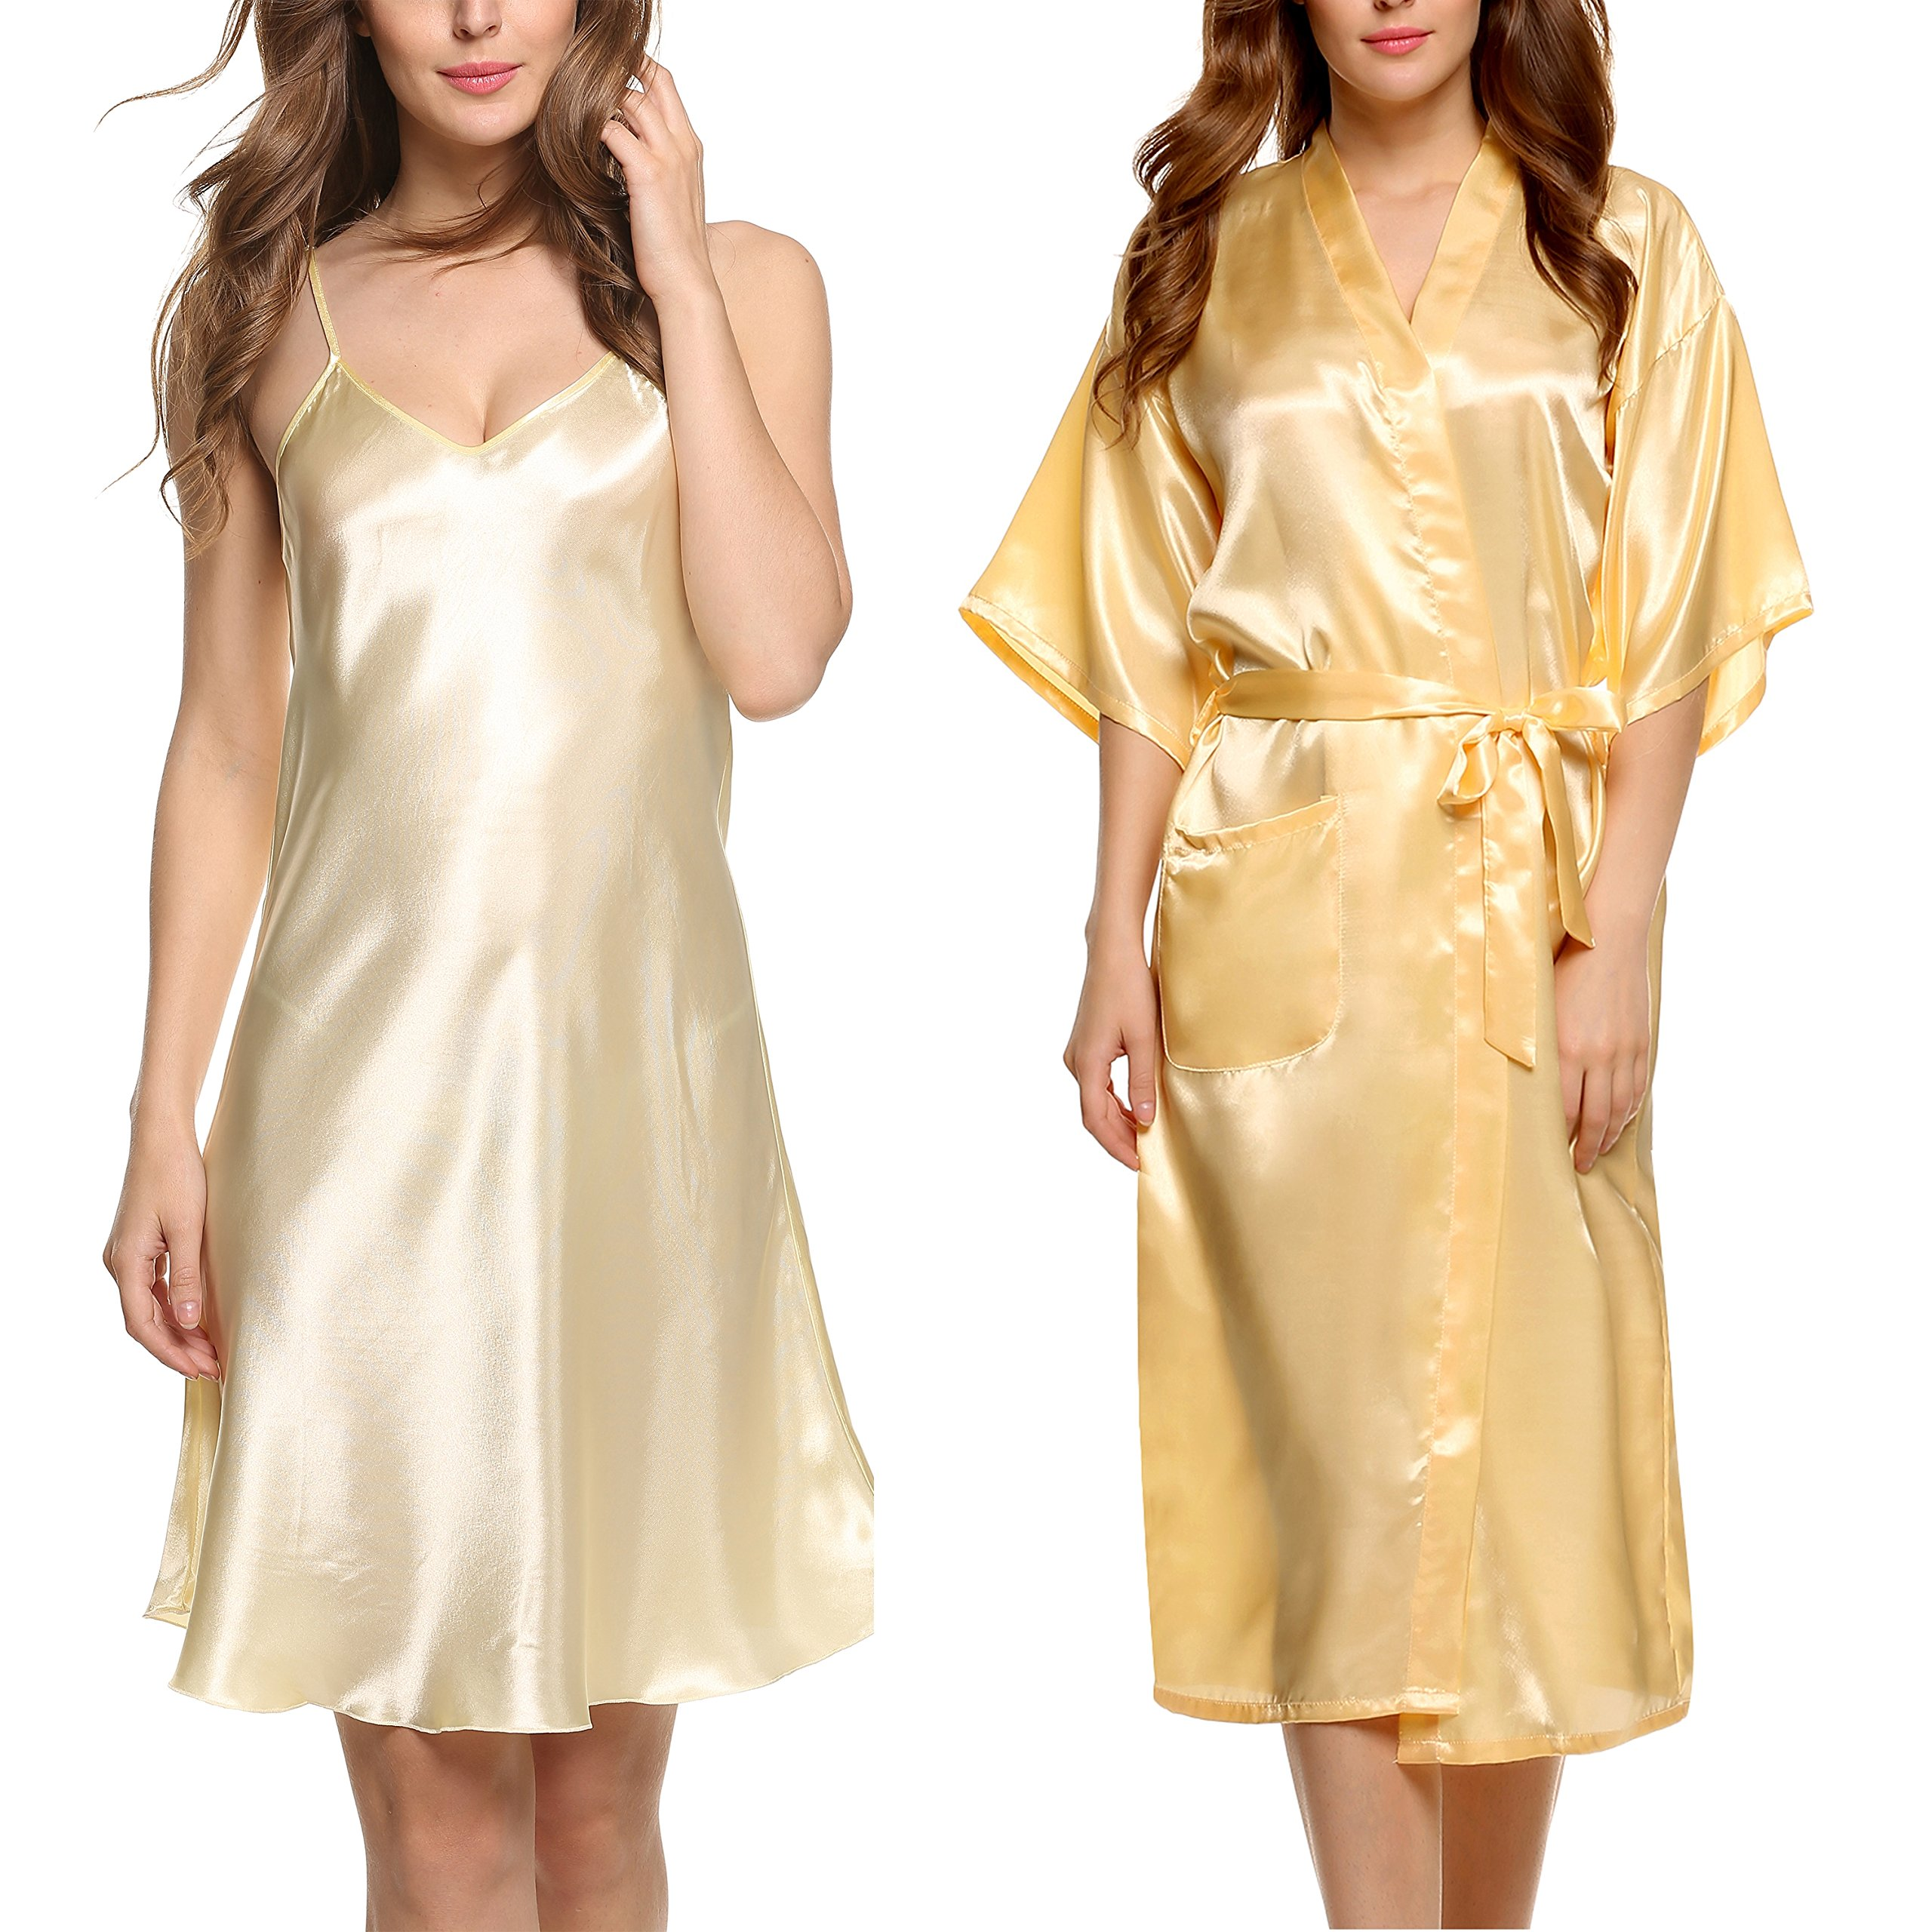 Avidlove Women's Silk Kimono Robe Long Stain Full Slip Nightgown Sleepwear Yellow XL